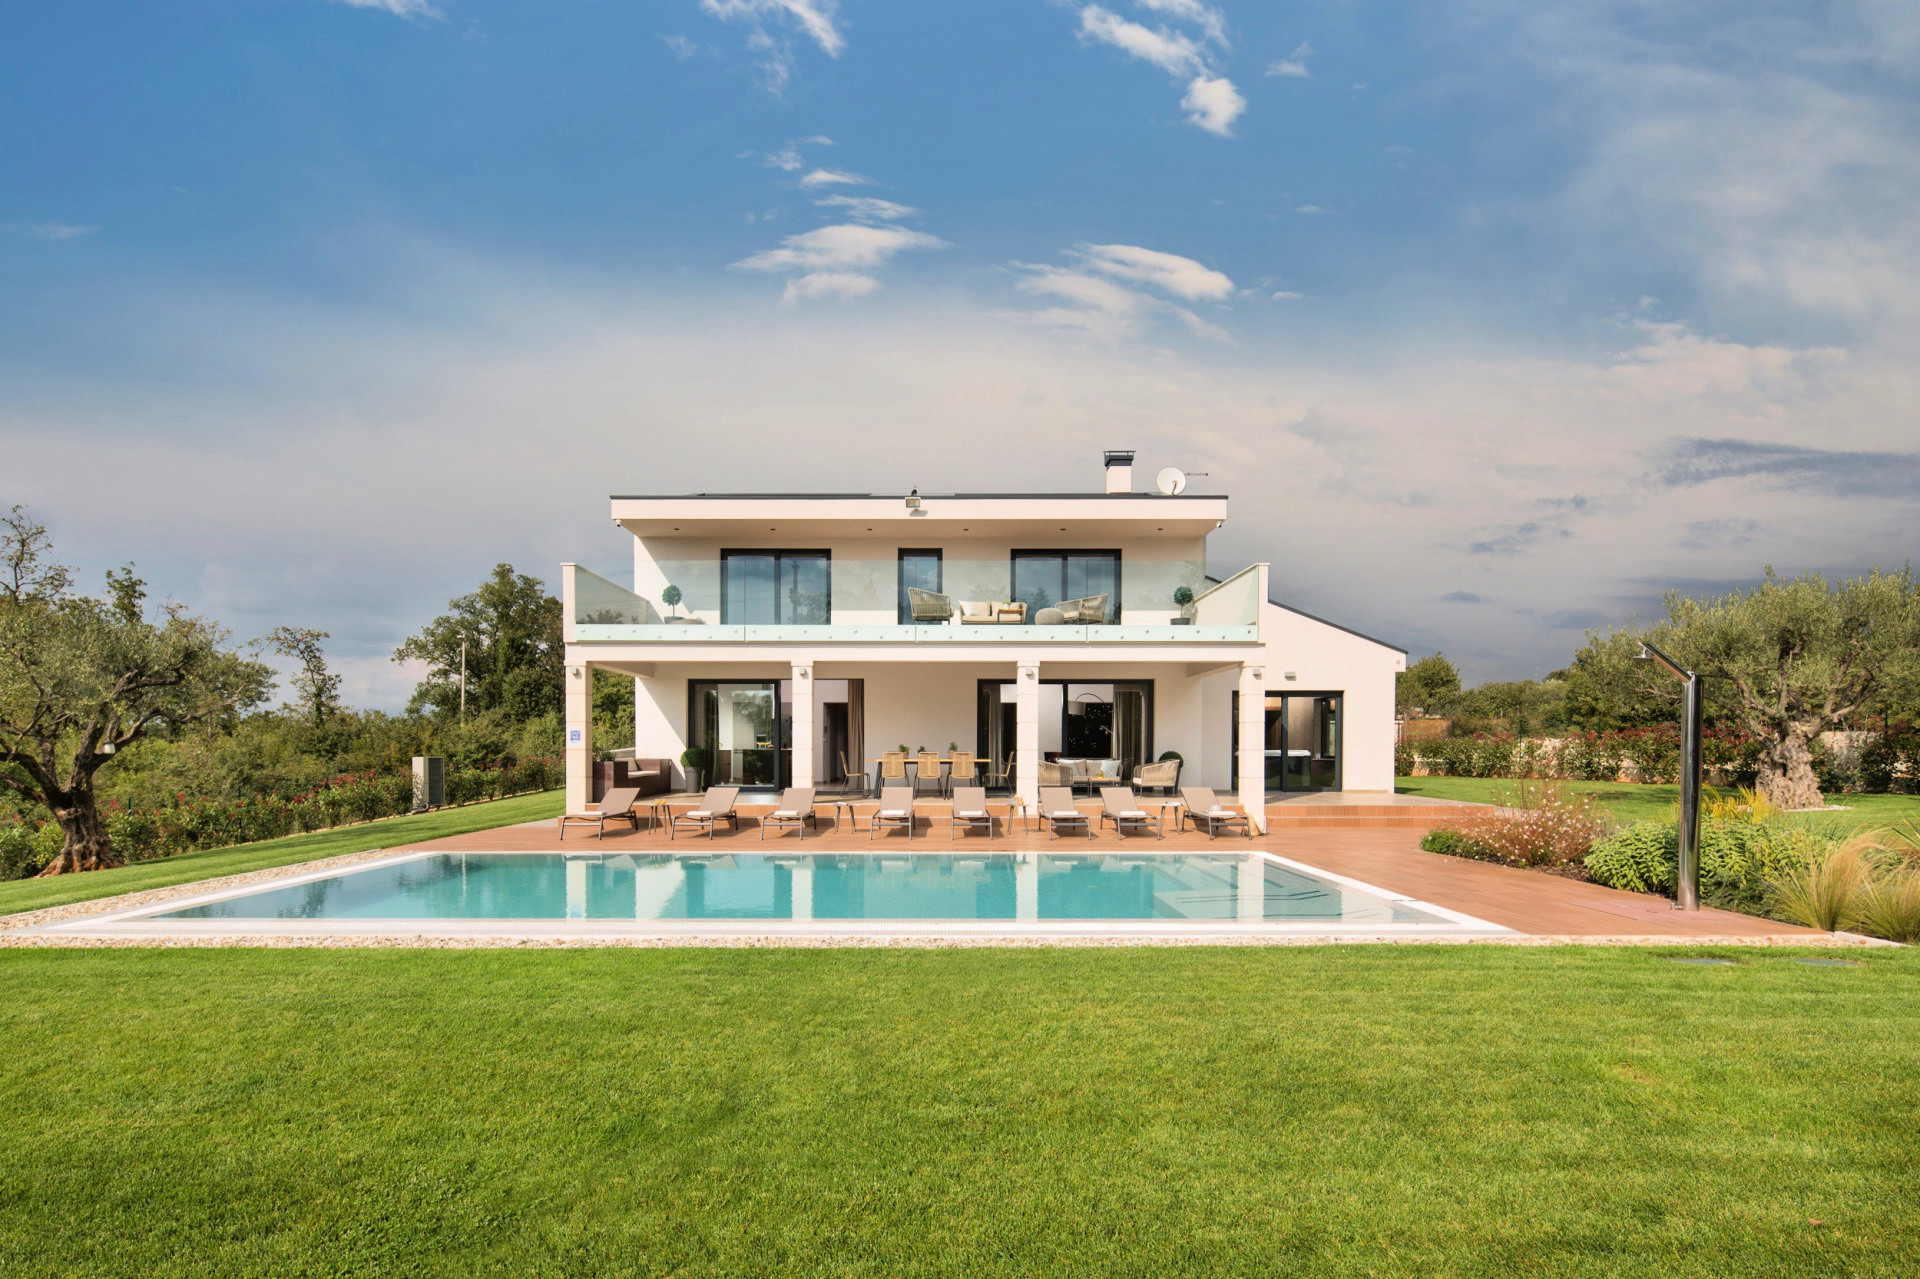 Villa of the week- Villa Gianno near Porec, Villas with pool, holiday houses and hotels in Croatia - Charming Croatia